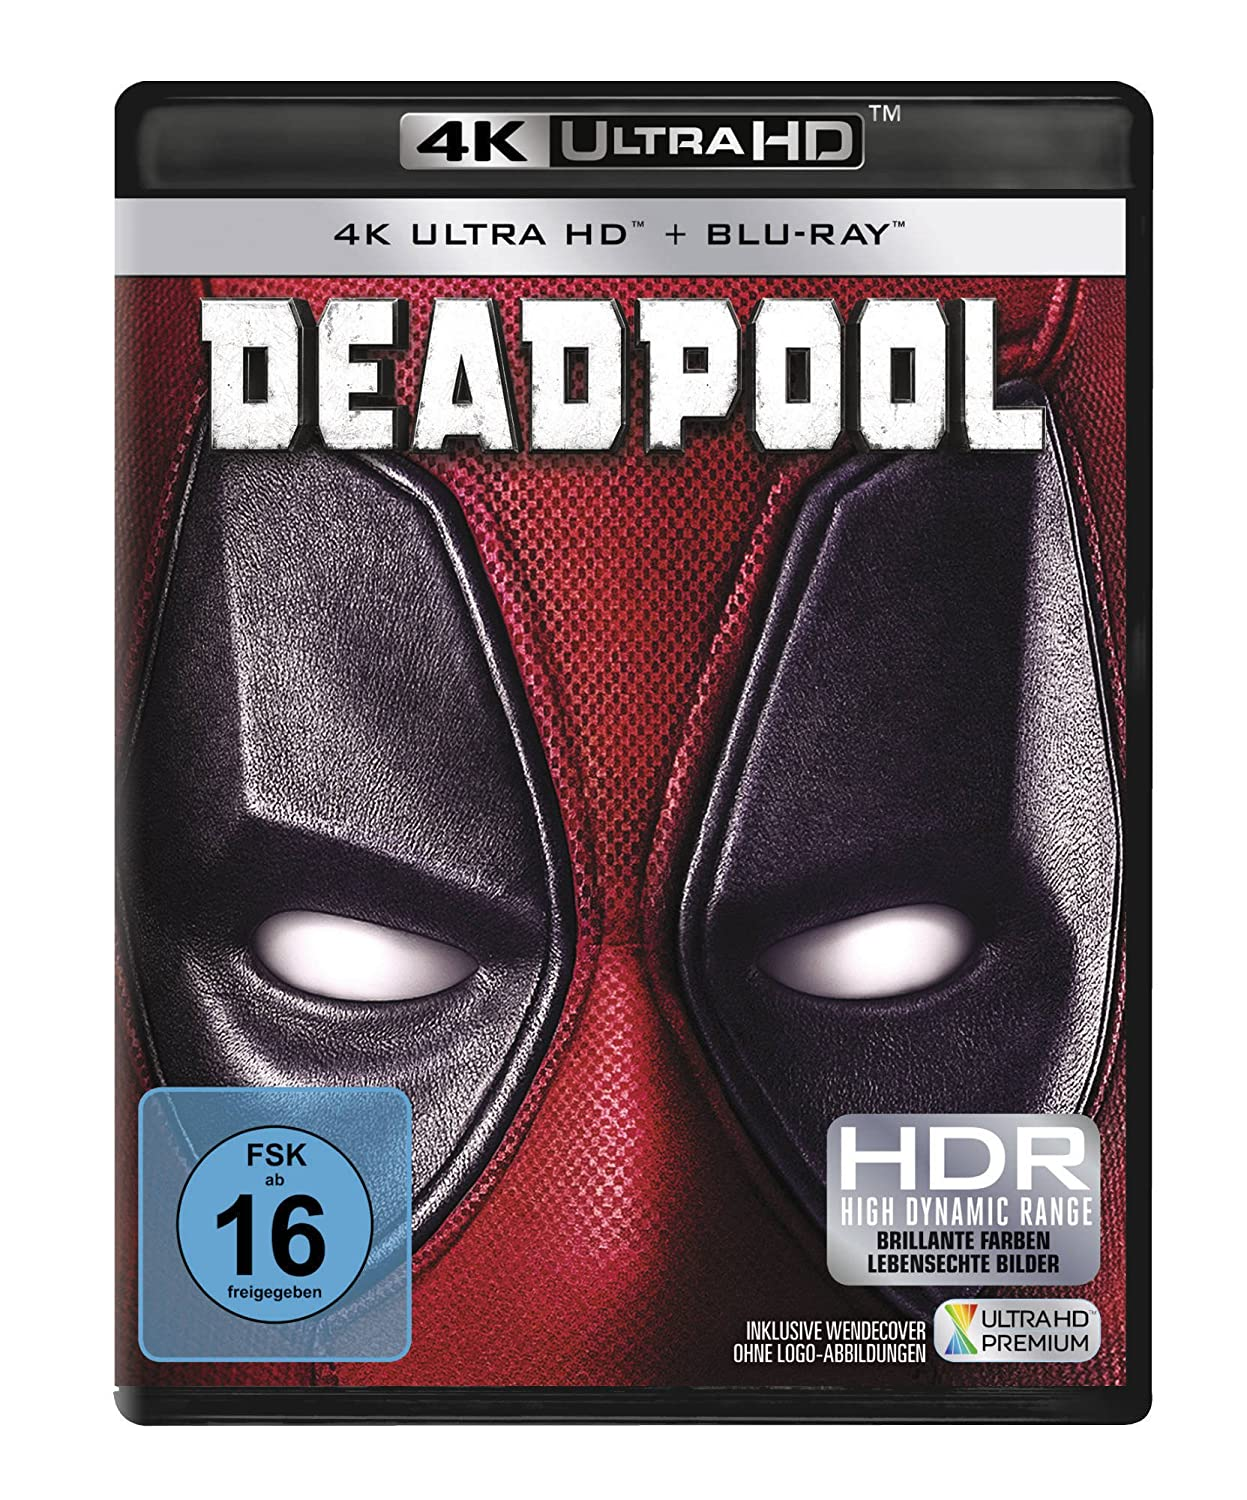 [amazon.de] Deadpool 4k um 19,55€ anstatt 23€